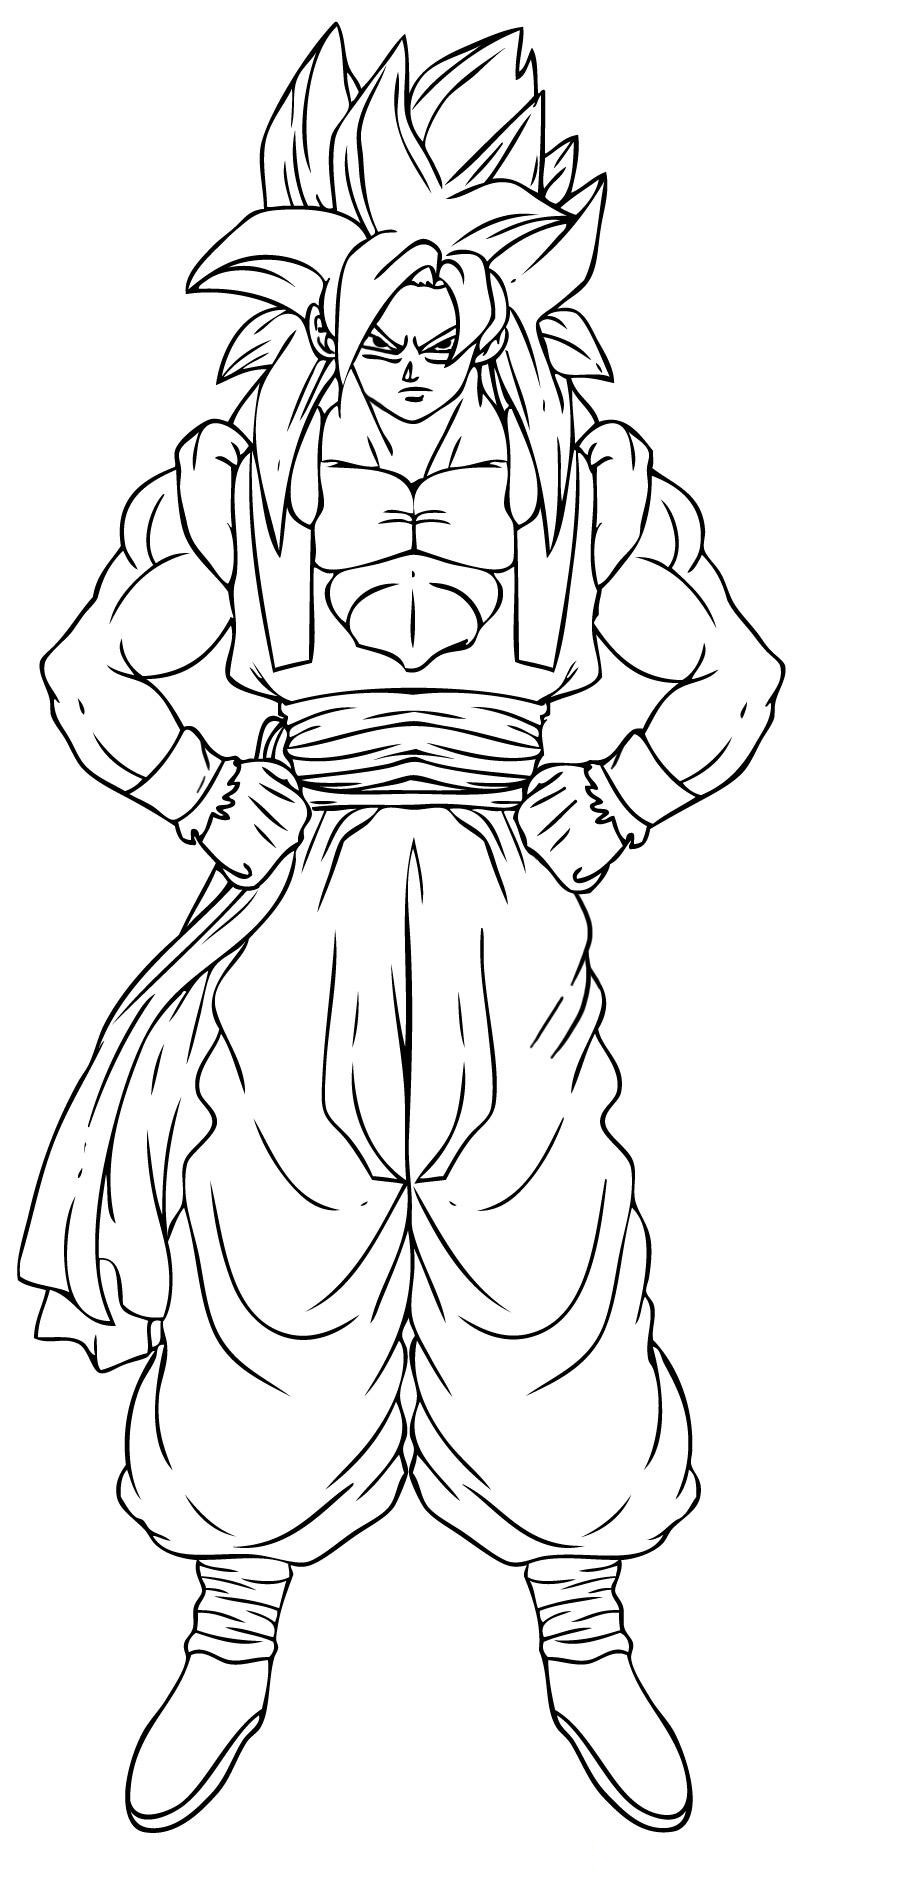 coloring pages dragonballz - photo#8